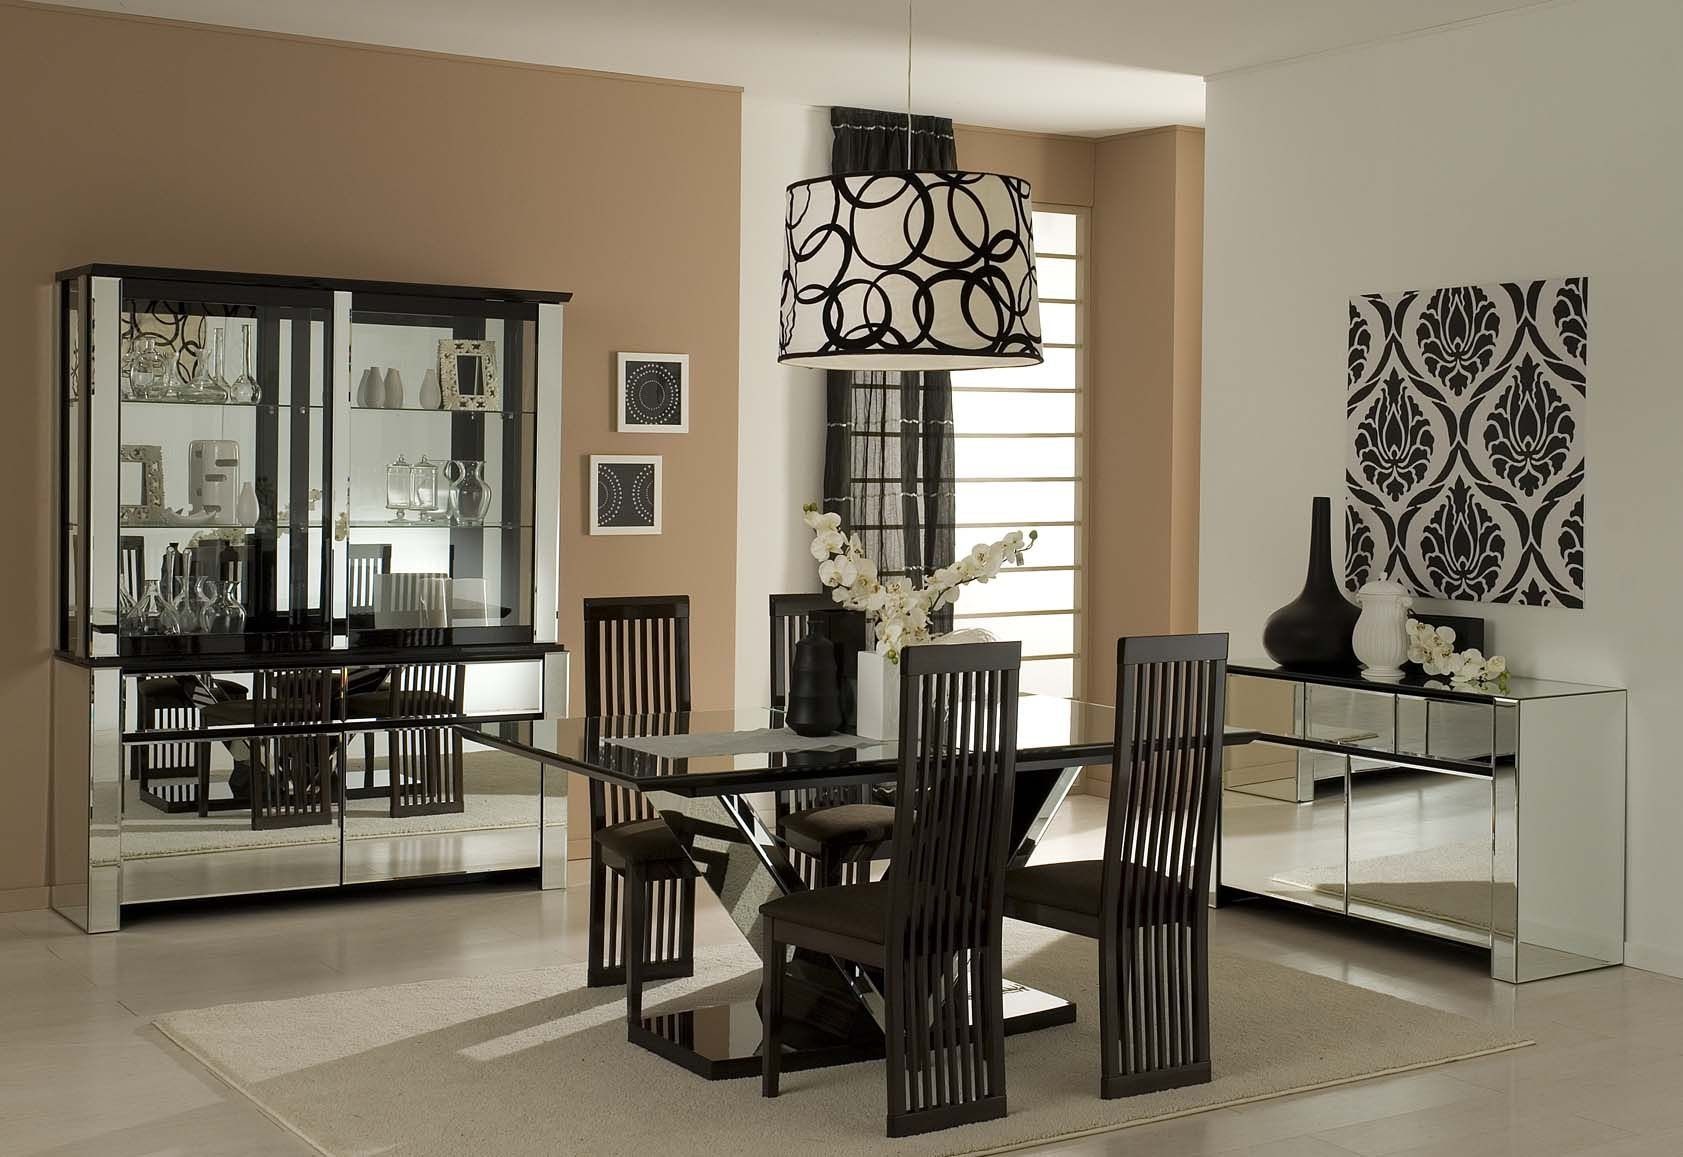 Contemporary Dining Room Furniture  Home Decorating  Pinterest Interesting Modern Dining Room Design Design Decoration